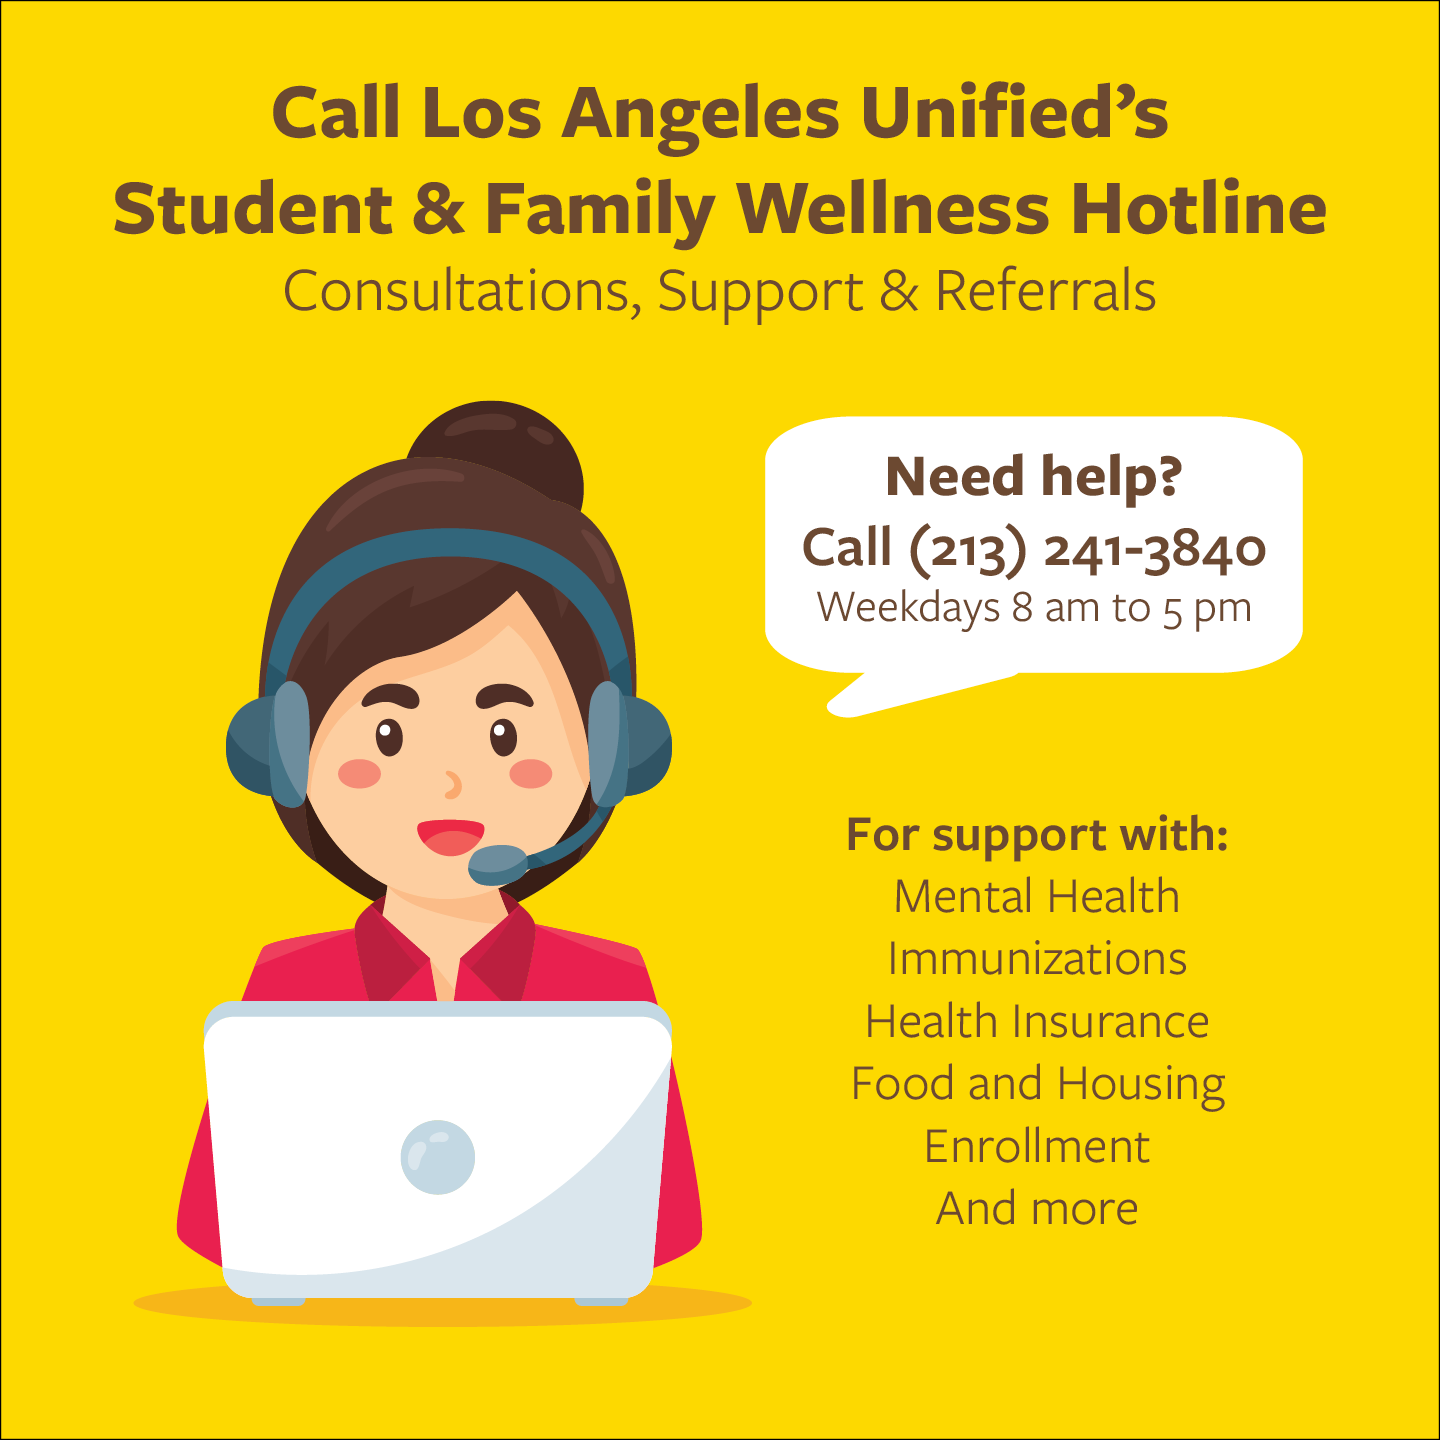 LA Unified's Student & Family Wellness Hotline